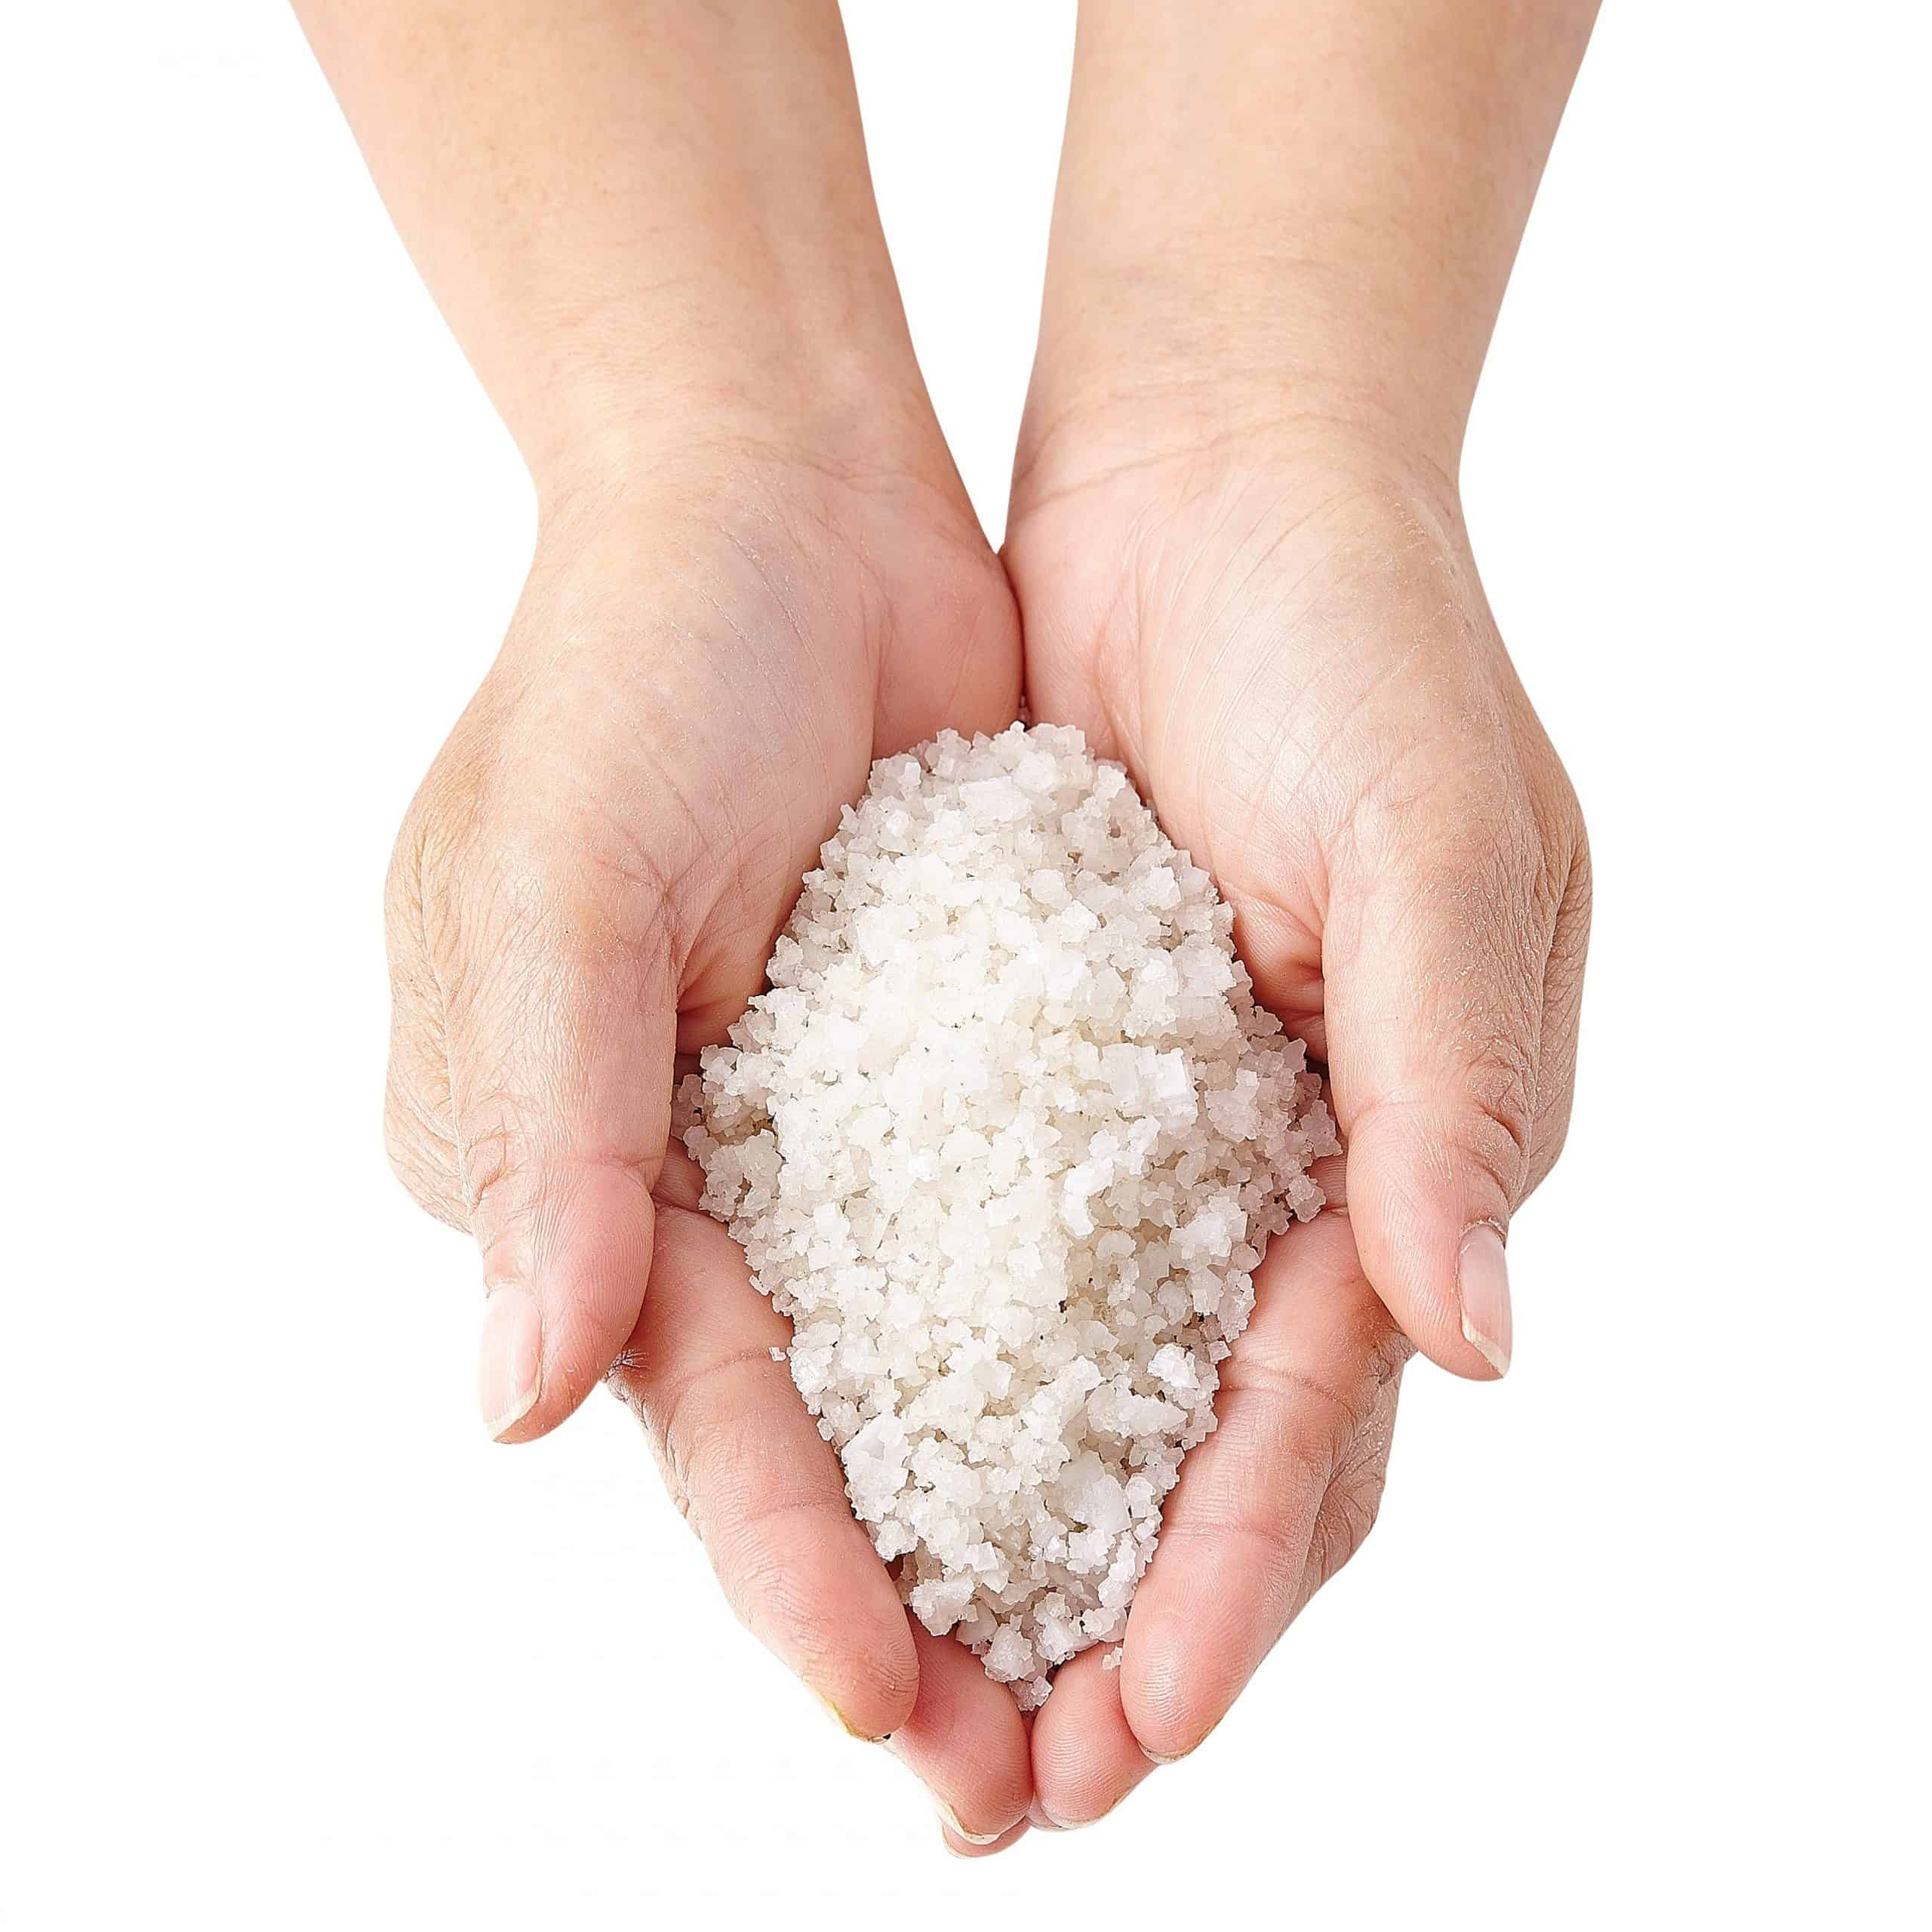 Health Benefits of Sea Salts - Sea Salt Scrubs